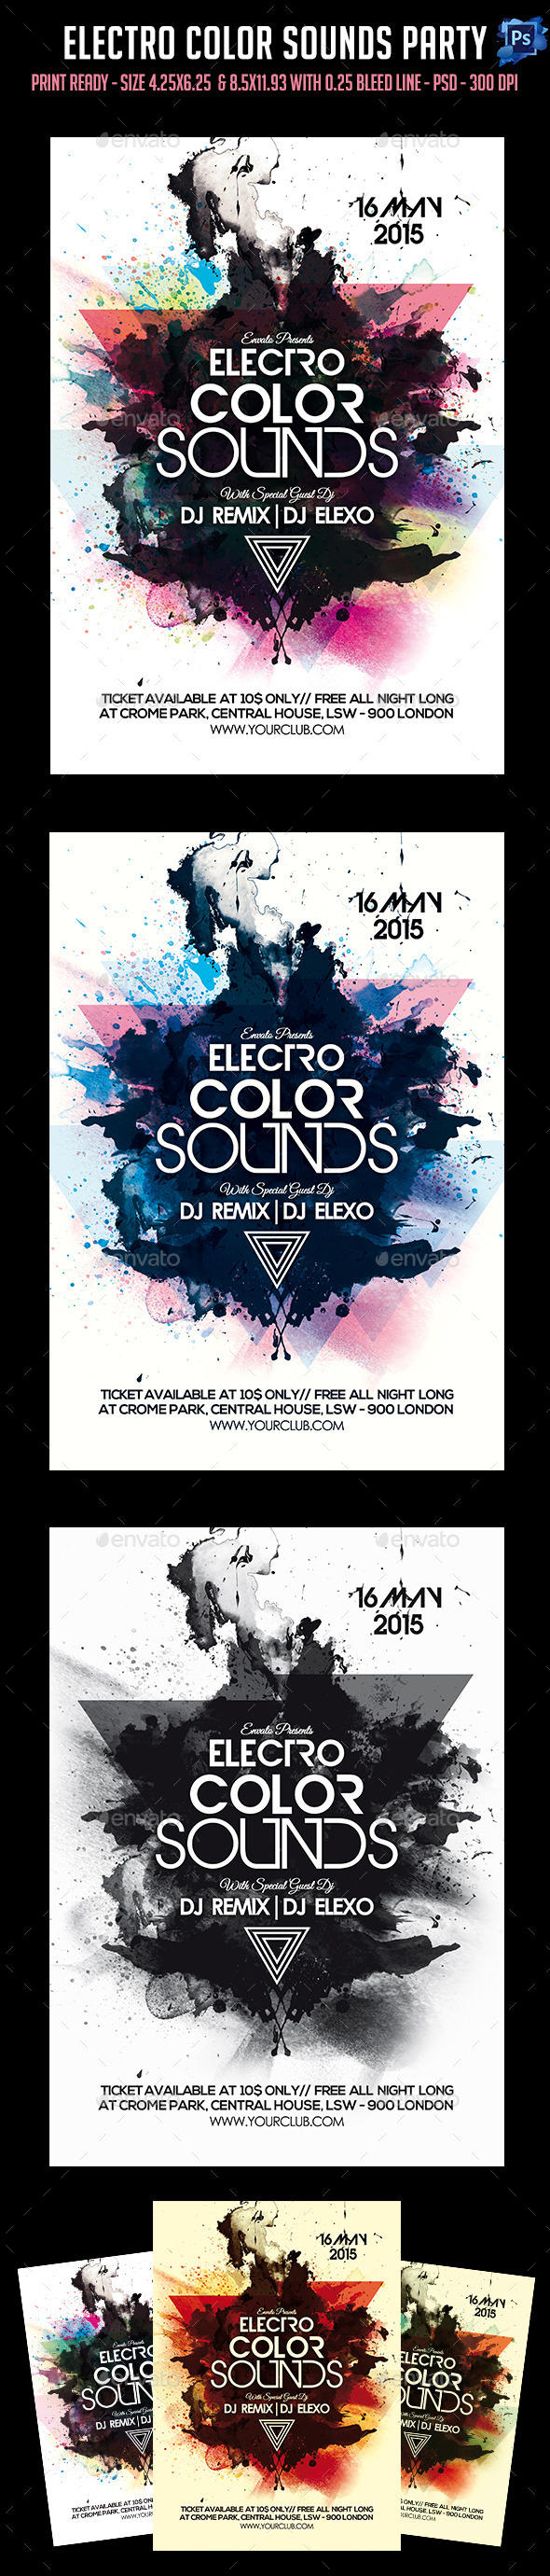 GraphicRiver Electro Color Sounds Party Flyer 11405810